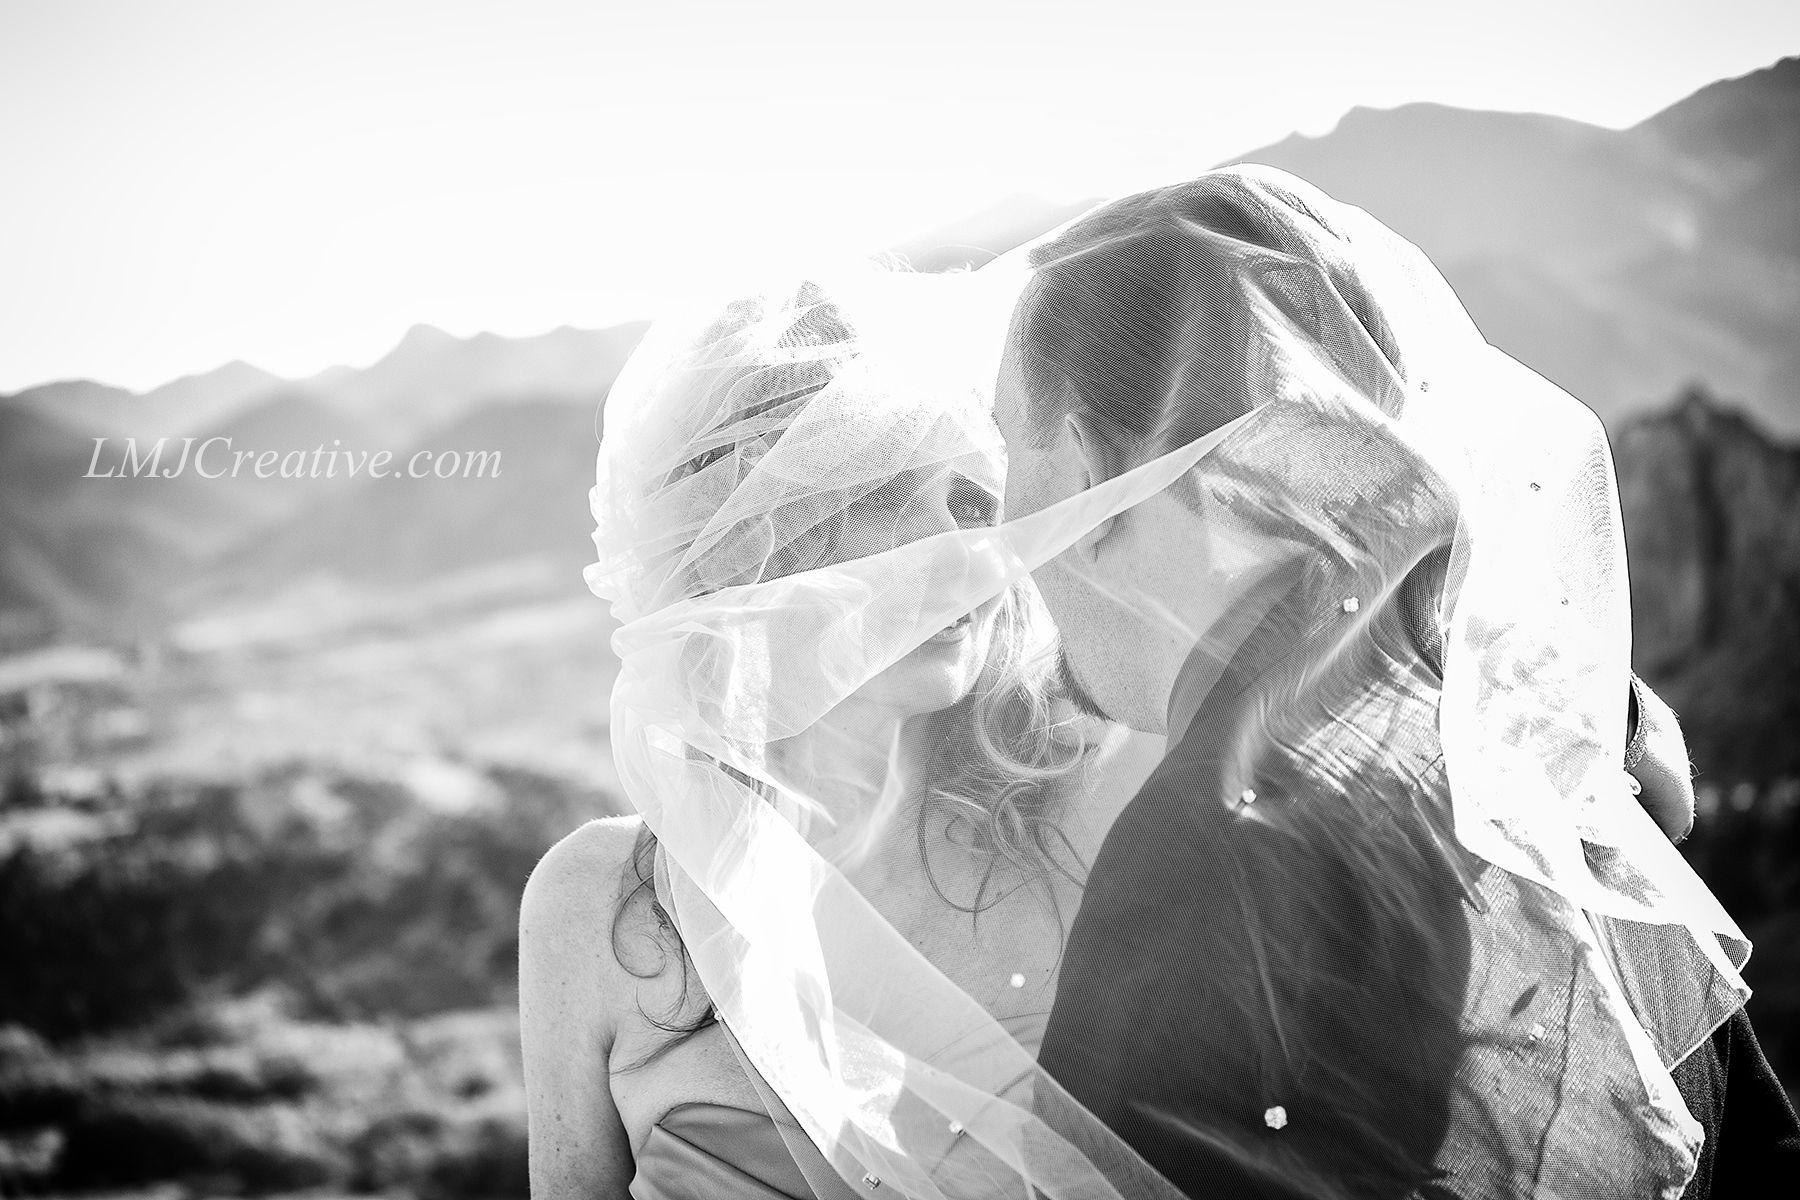 Corey and Shela under her windy veil, after their wedding